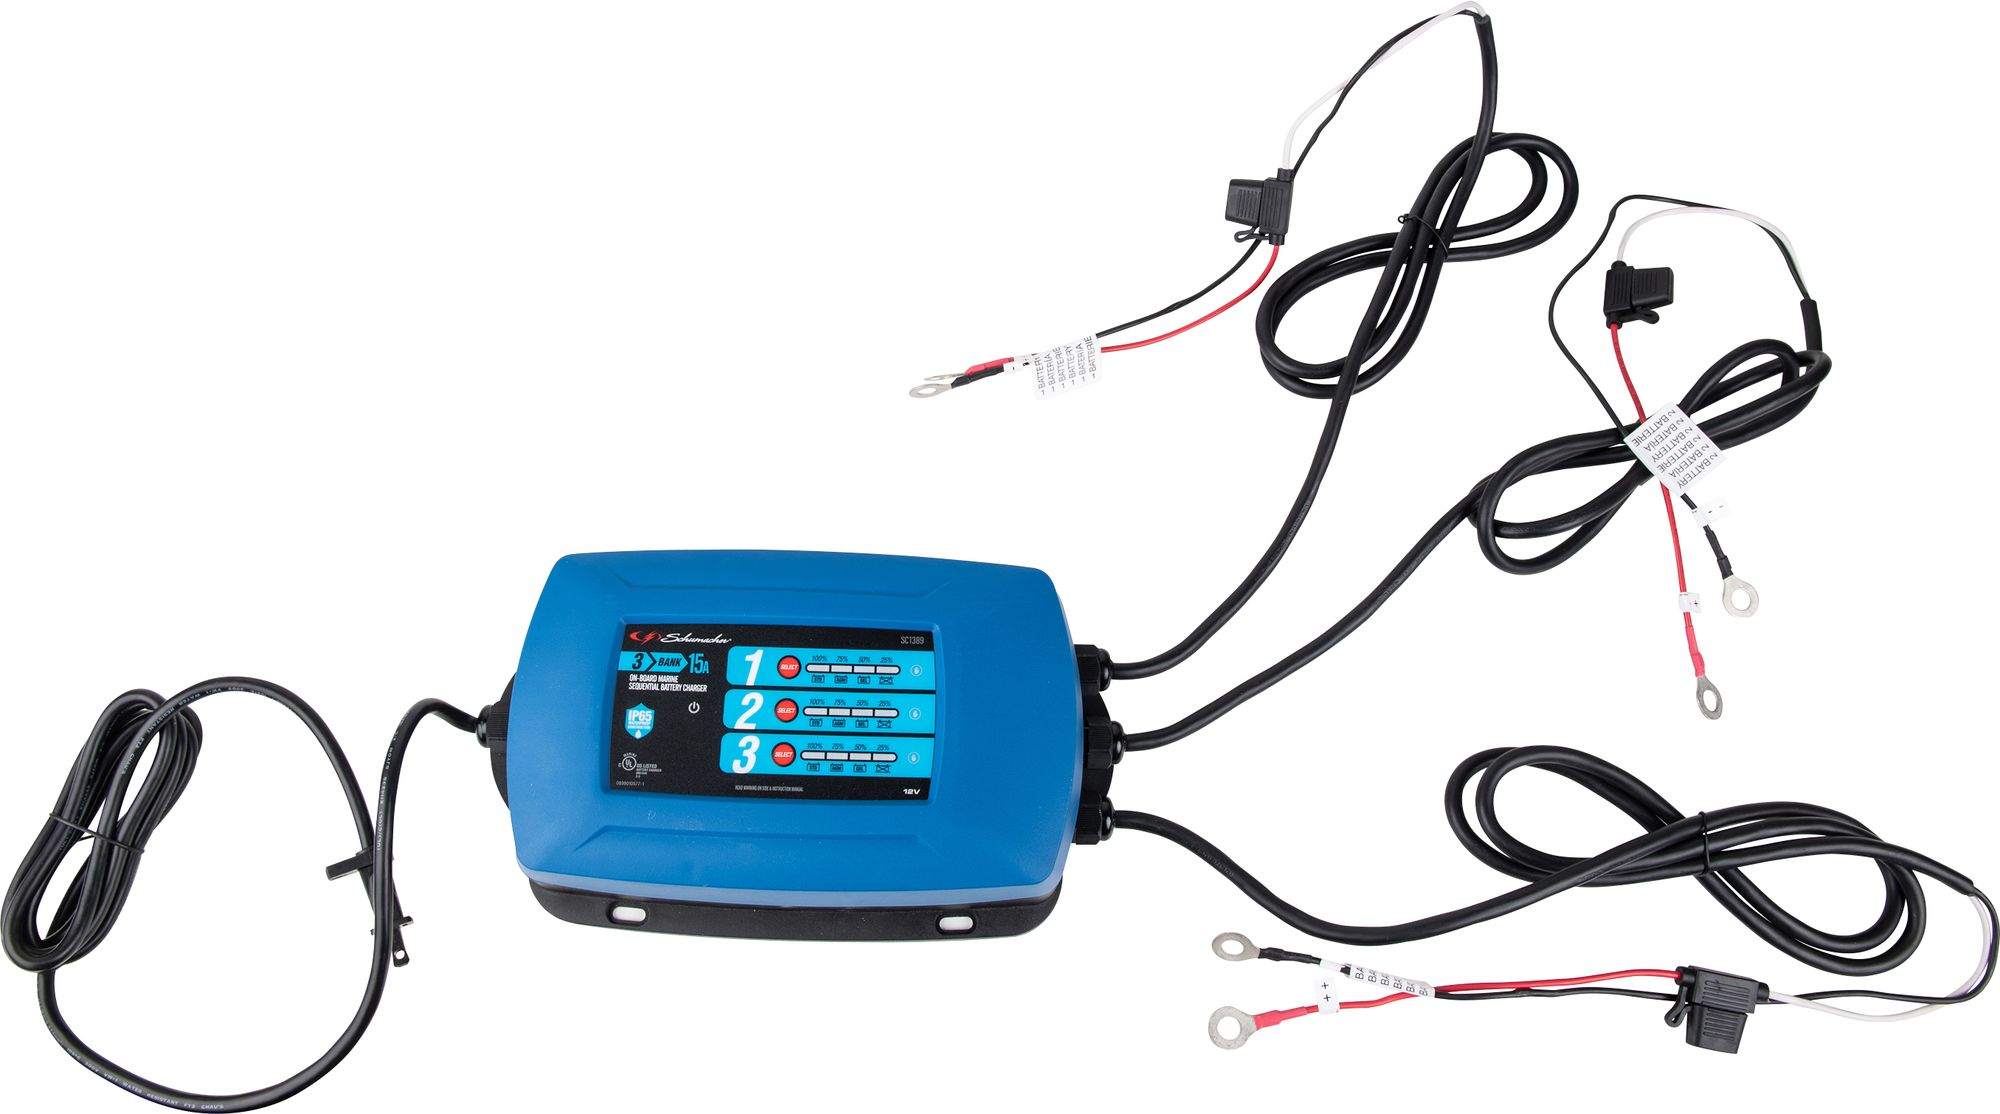 what is the best * bank marine battery charger